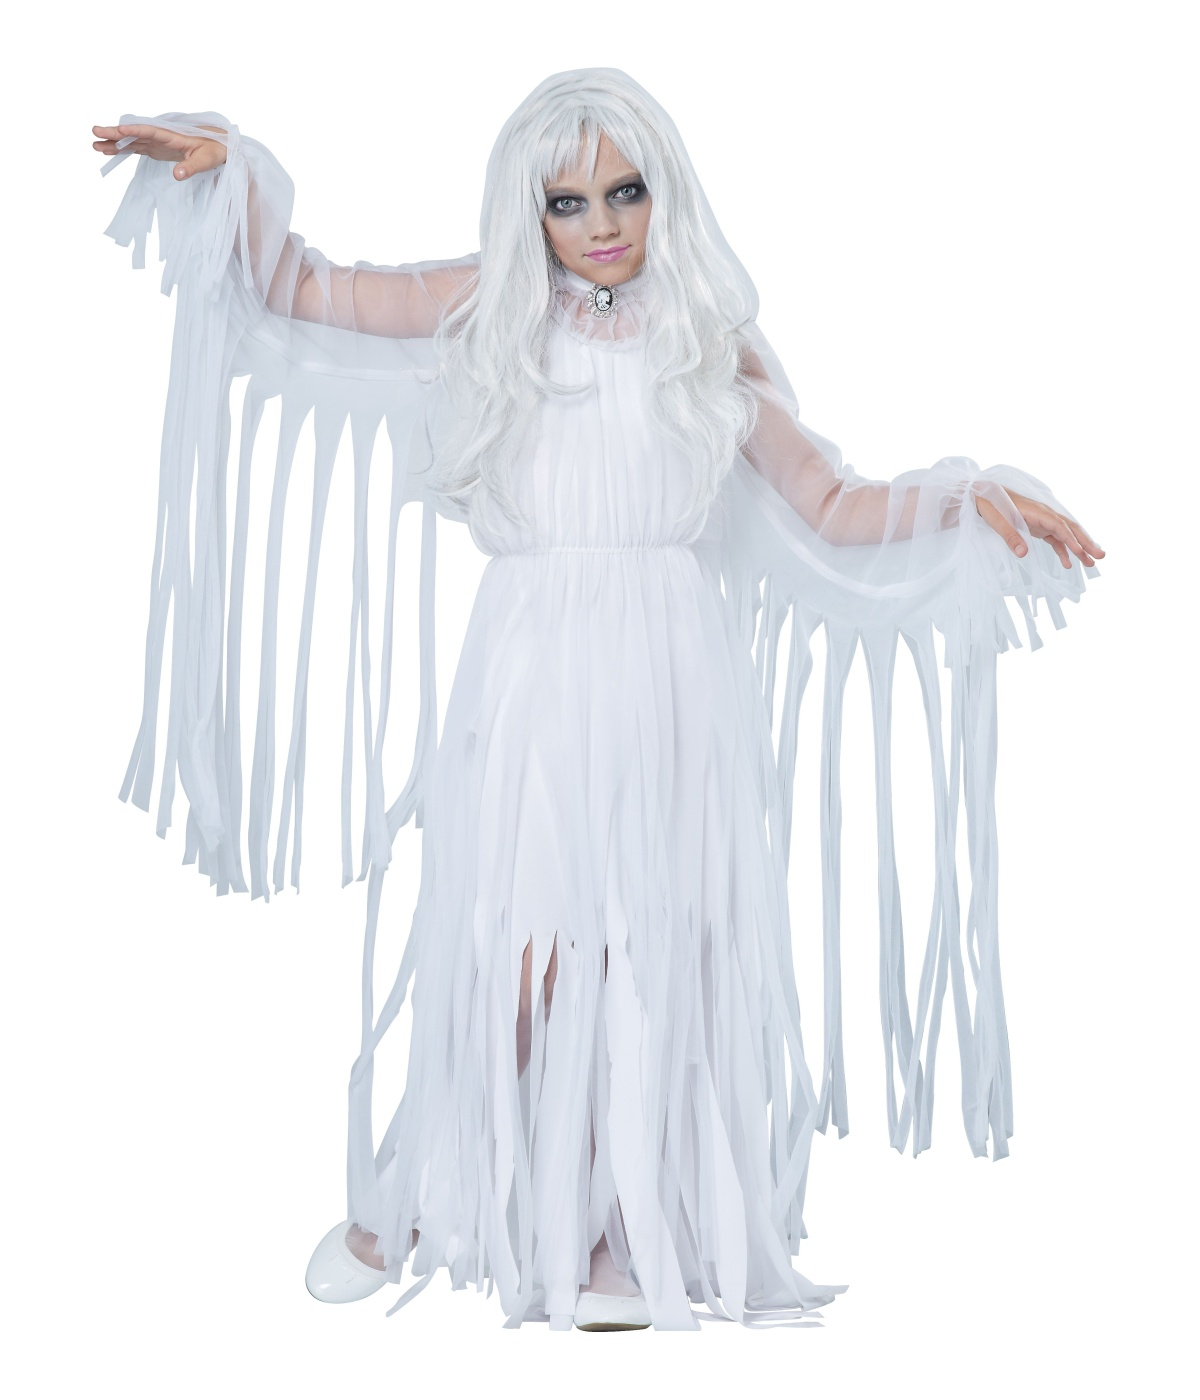 Spooky Ghostly Spirit Girl Costume